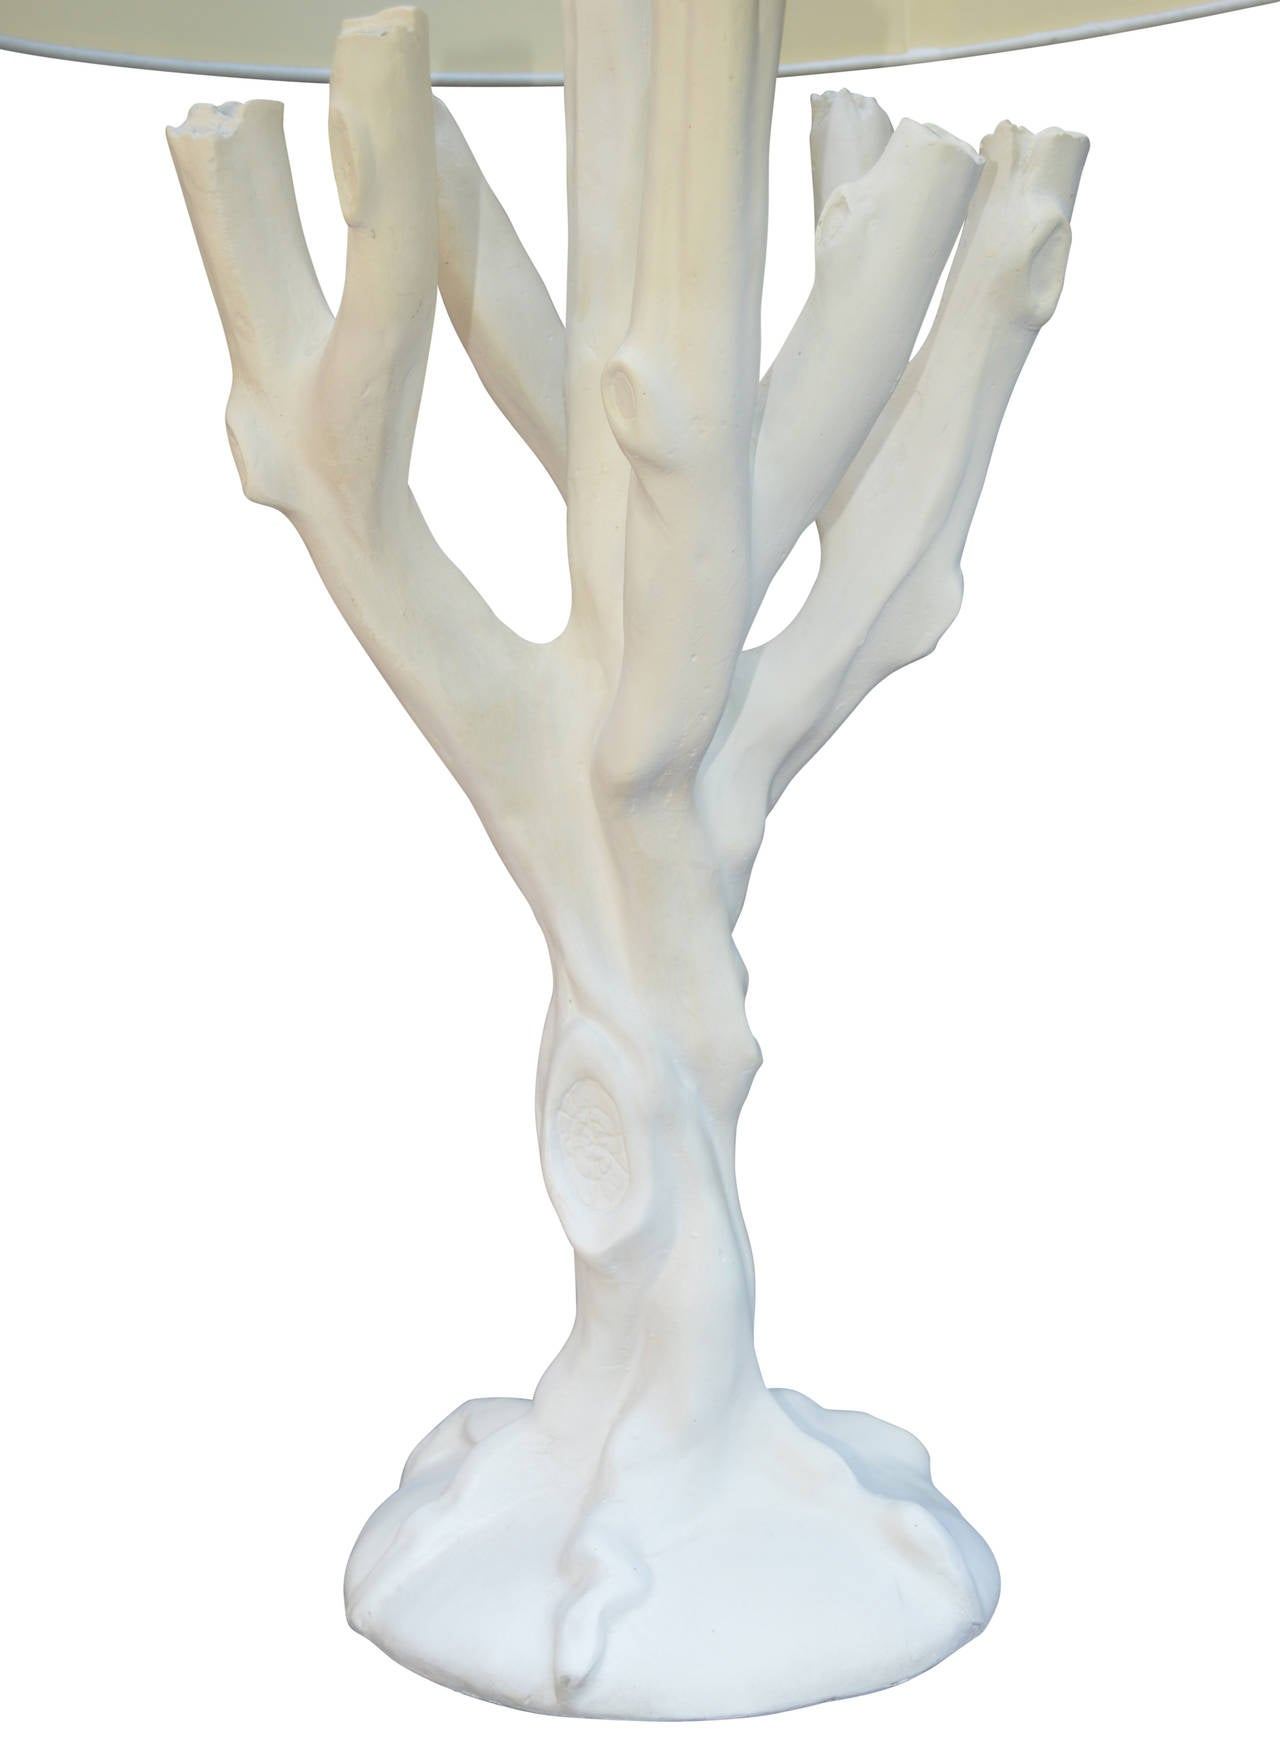 20th Century Plaster Tree Lamp in the Style of John Dickinson For Sale